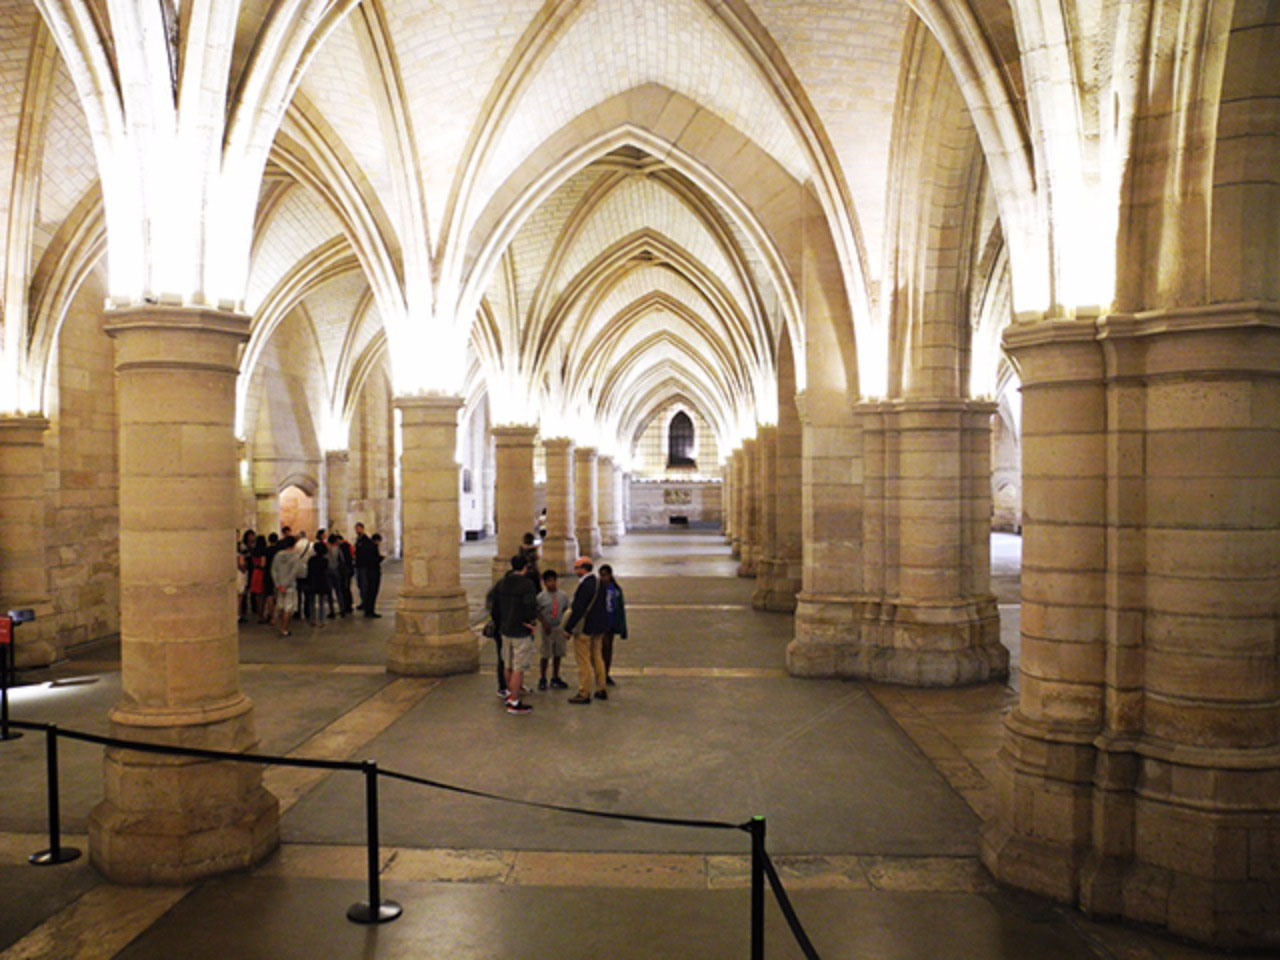 The Gard Room in the Conciergerie